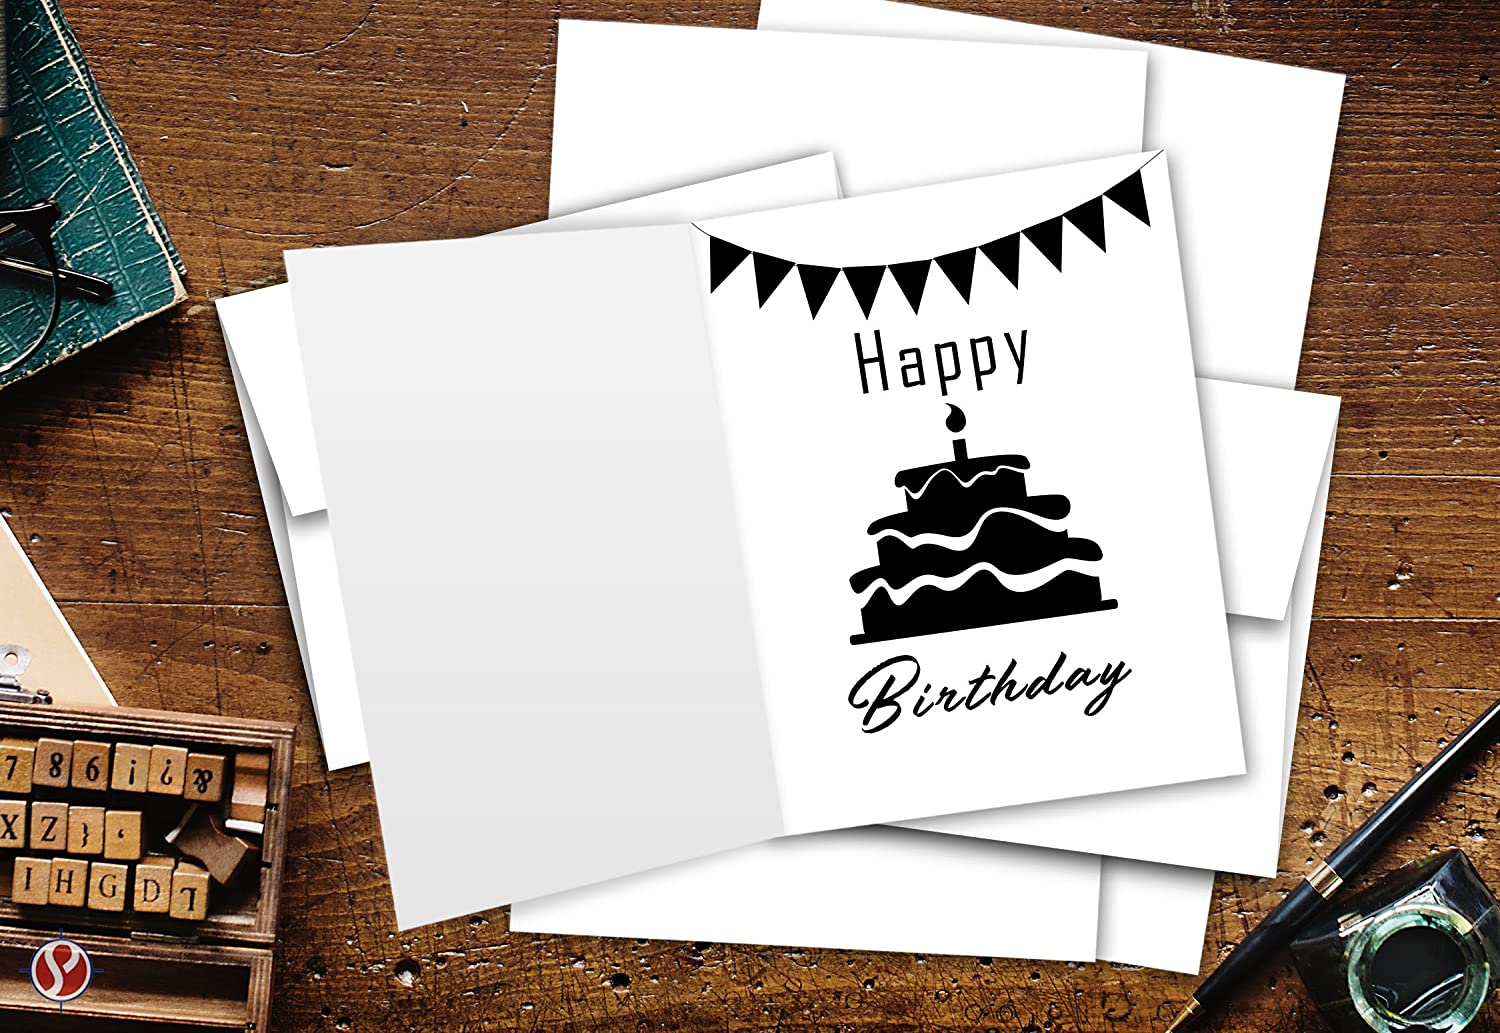 Invitations Bulk 50 Set Greeting Cards Set Gift Weddings /& All Occasion Invitation Letter Bridal Shower 4.25 x 5.5 Inches Blank White Cardstock /& Envelopes Perfect for Business Birthday